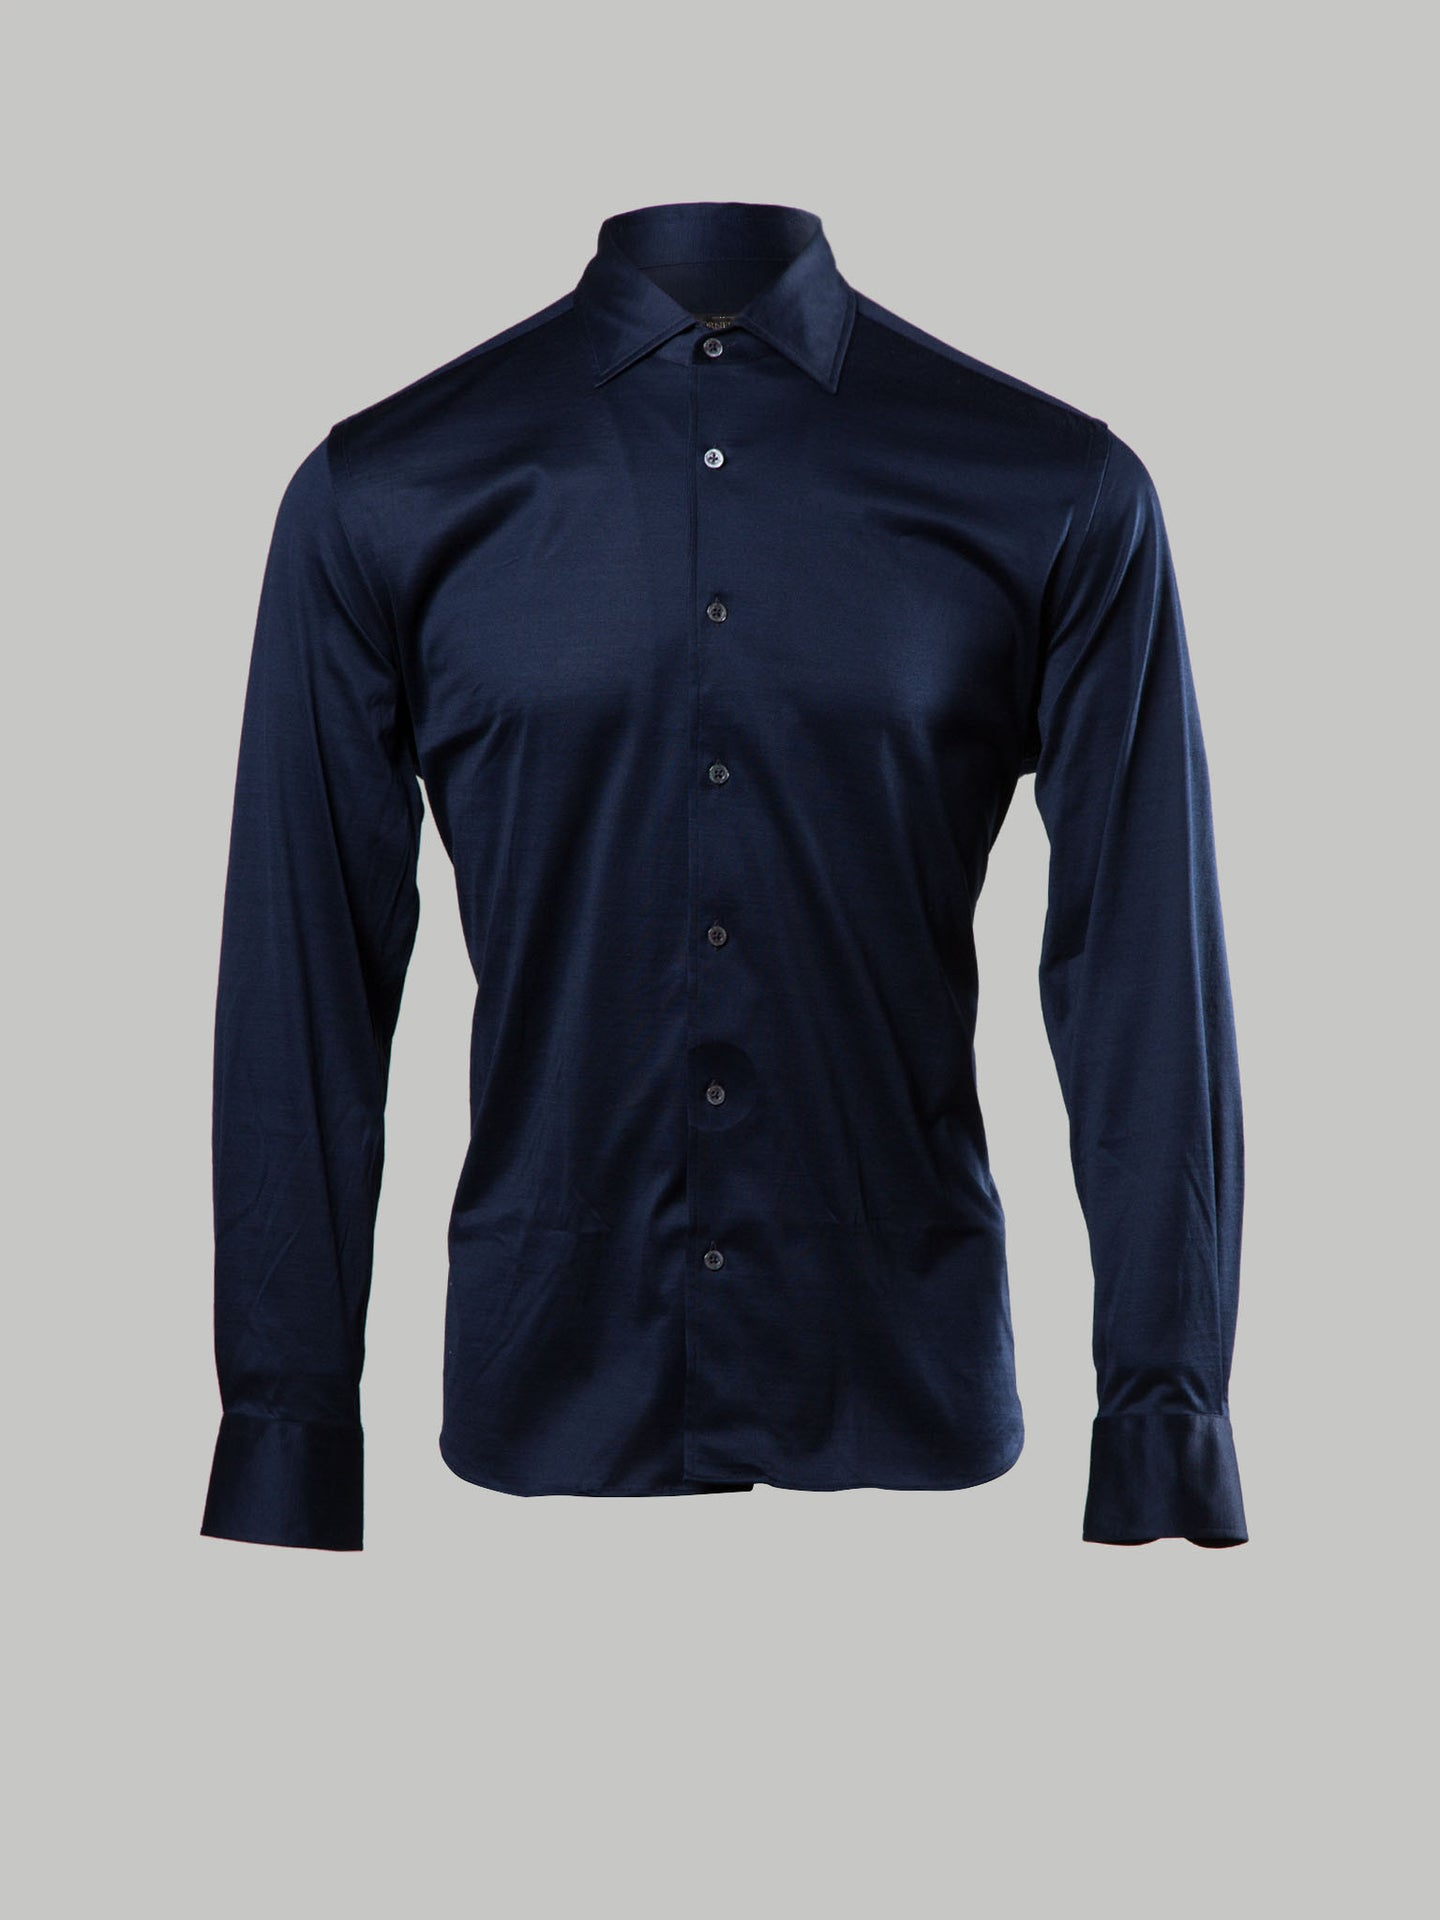 Corneliani Cut Away Collar (Navy)